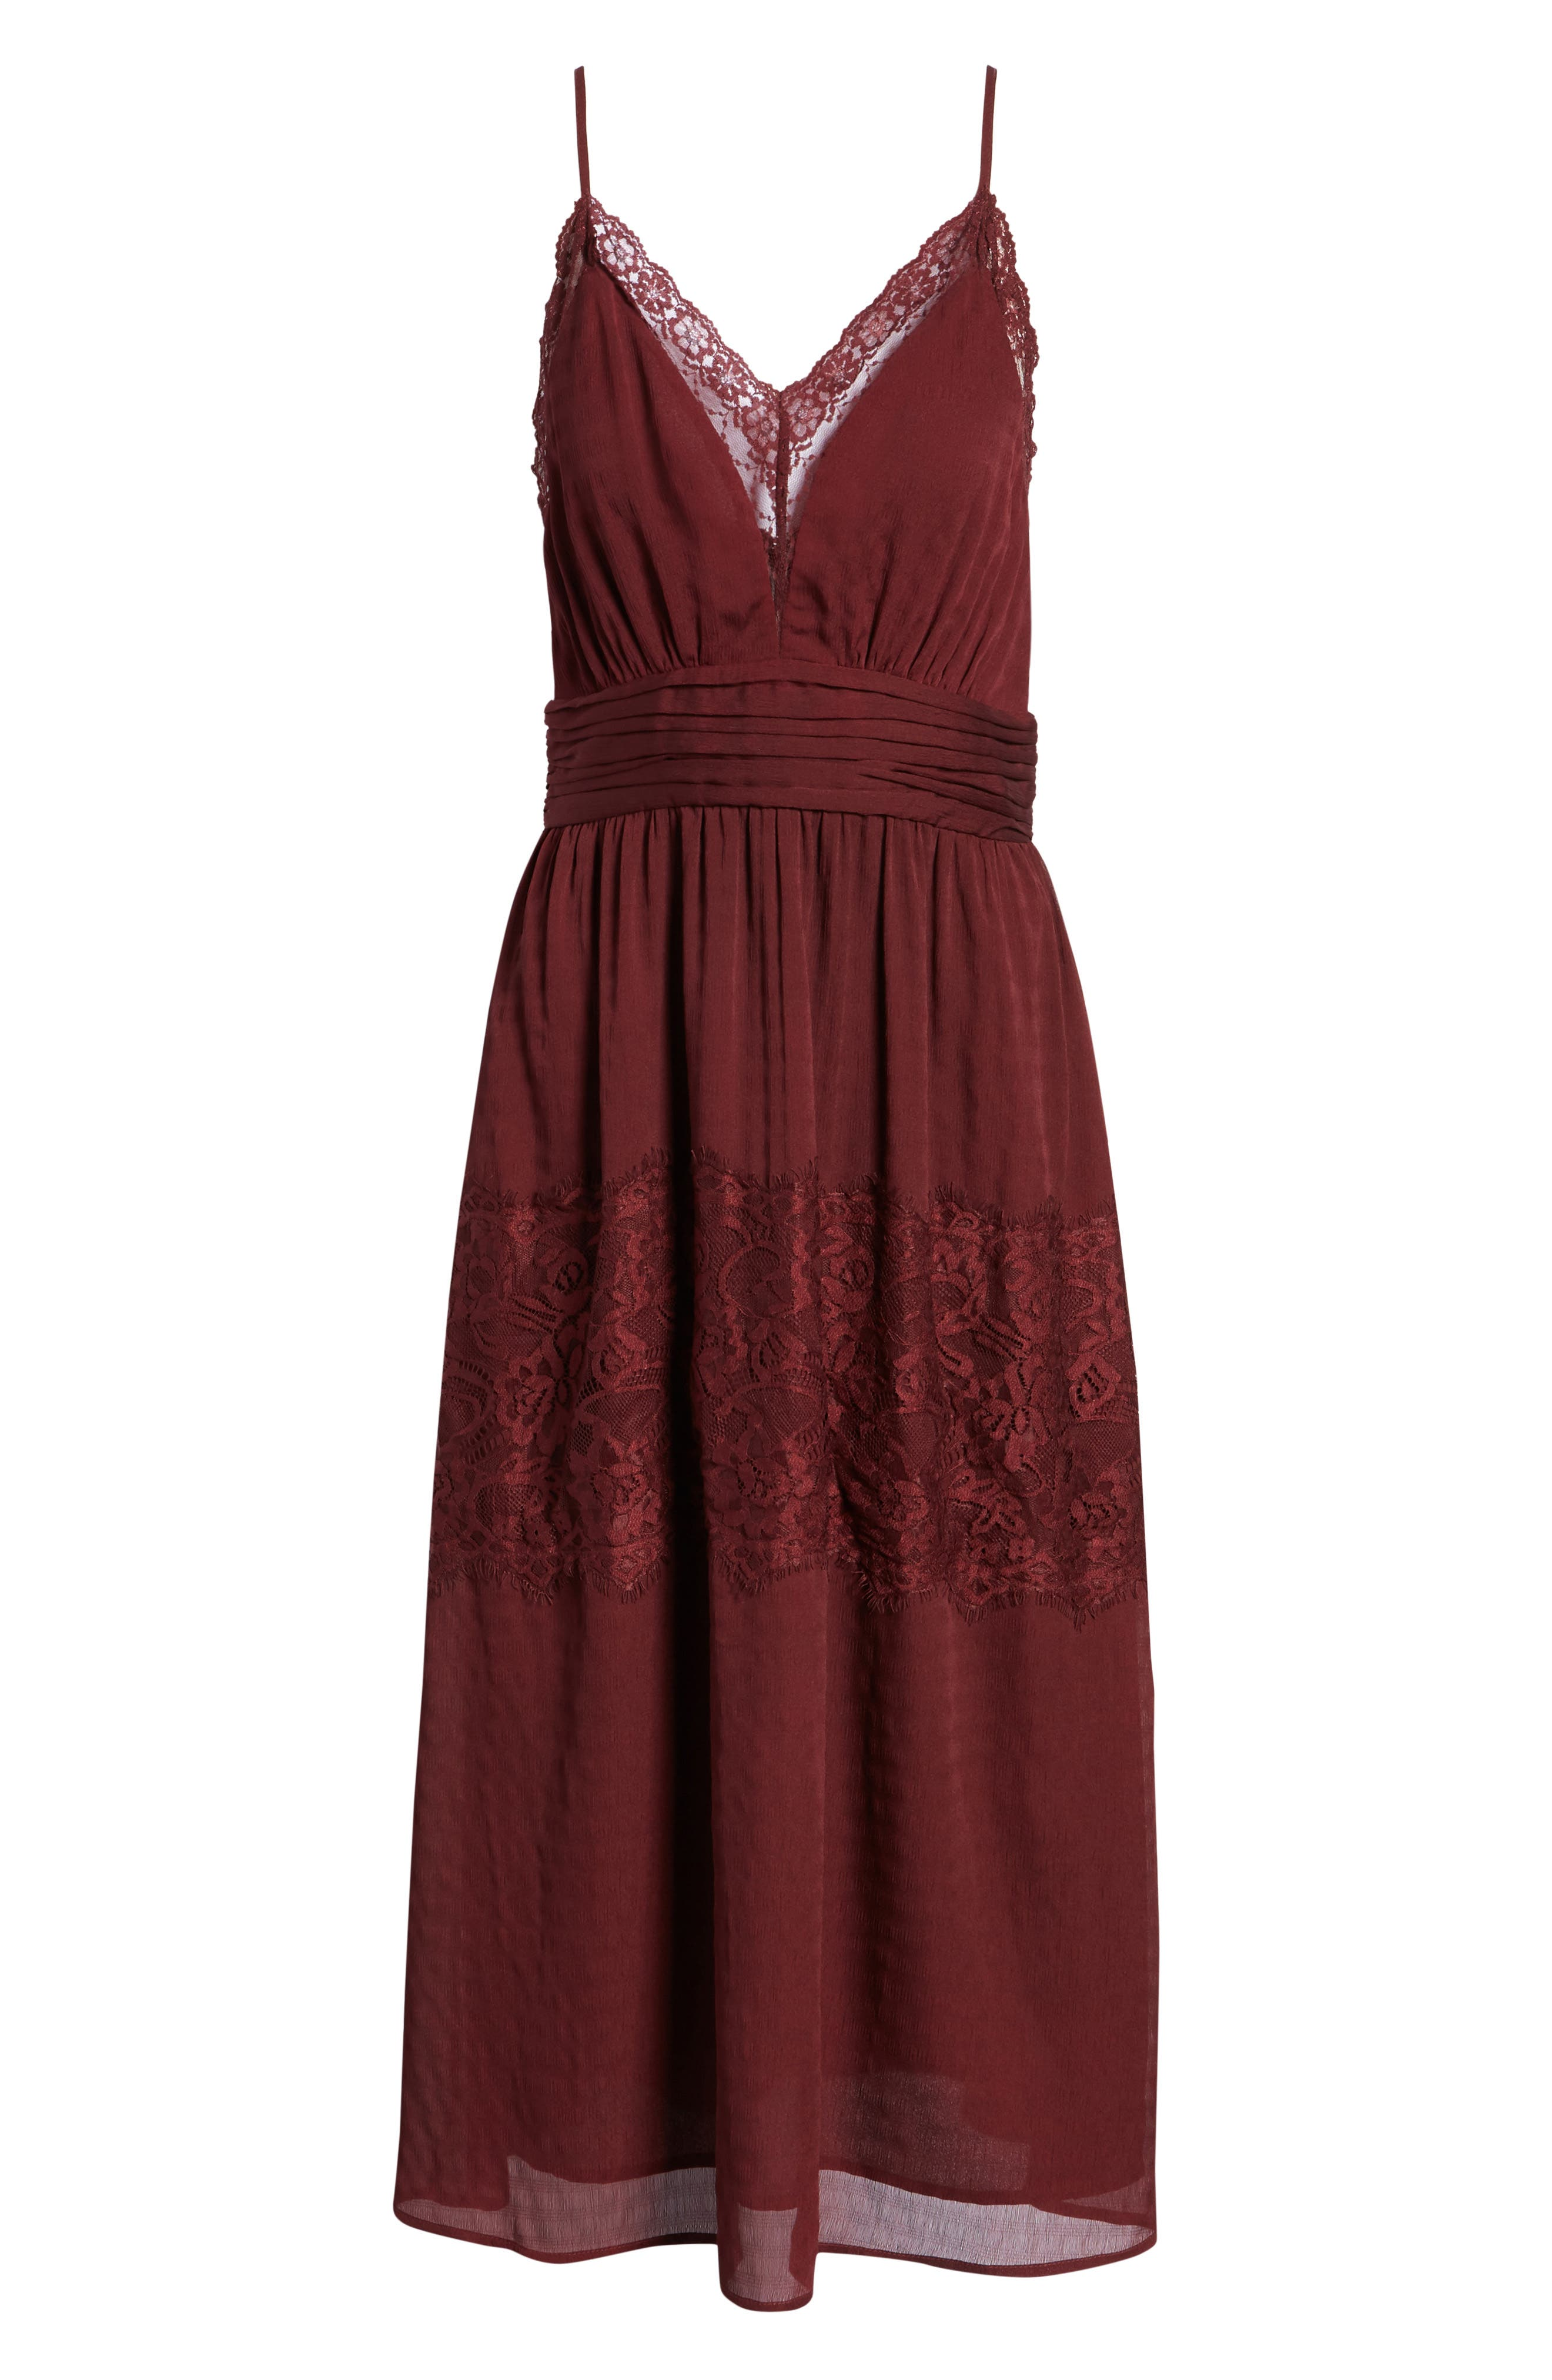 Lace Trim Midi Dress,                             Alternate thumbnail 7, color,                             930